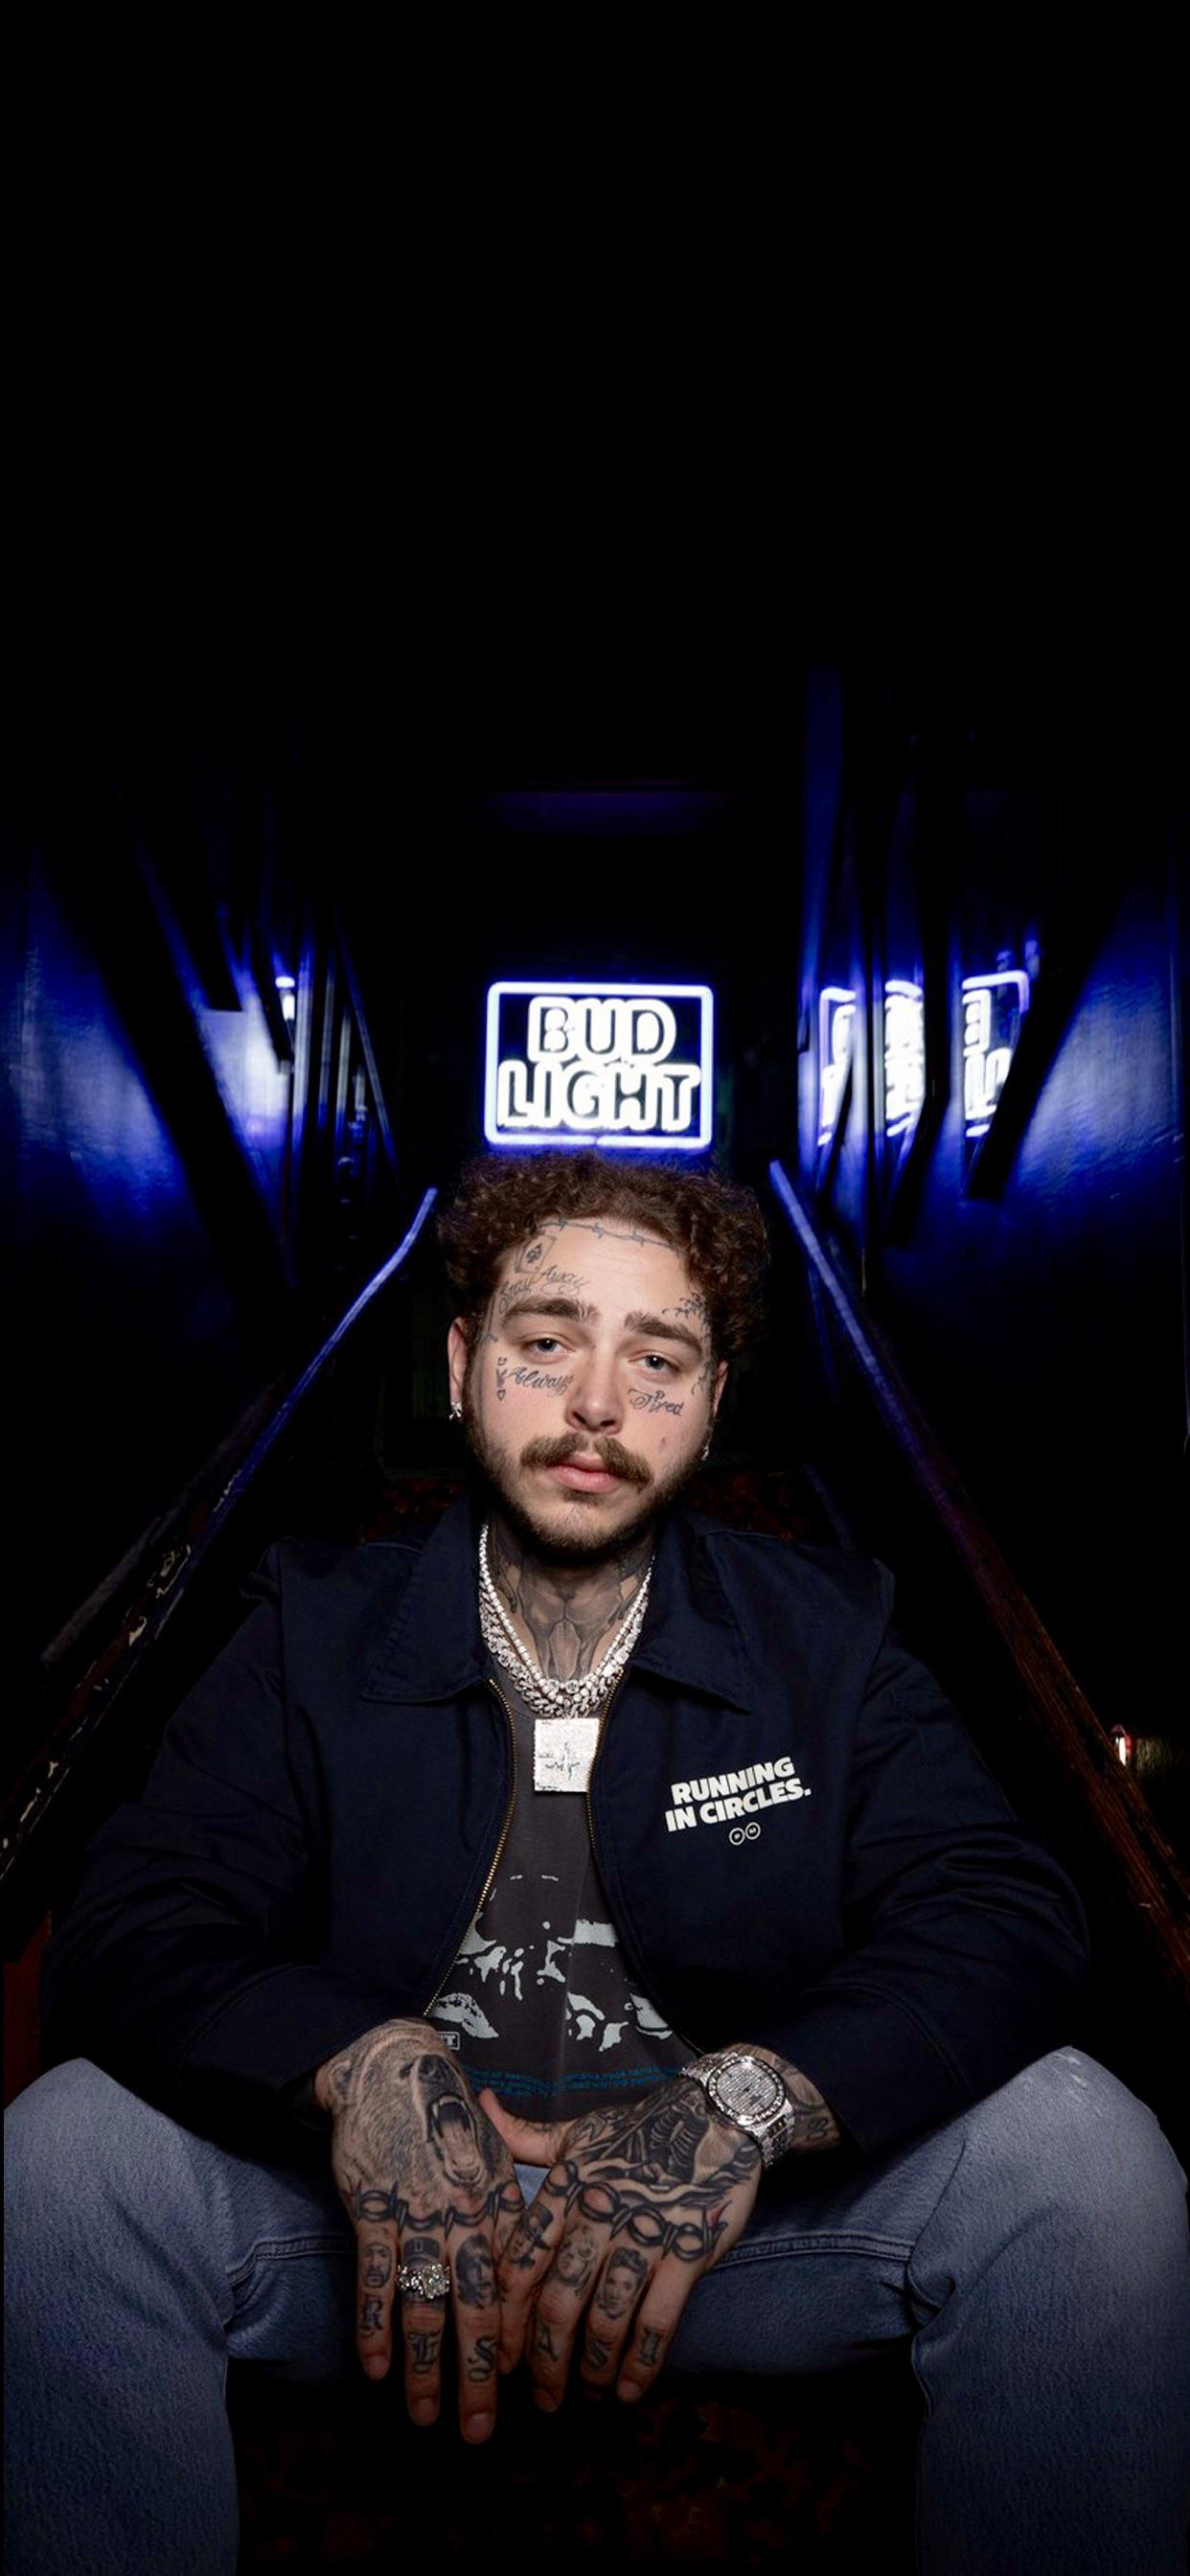 Post Malone Iphone Wallpapers Top Free Post Malone Iphone Backgrounds Wallpaperaccess